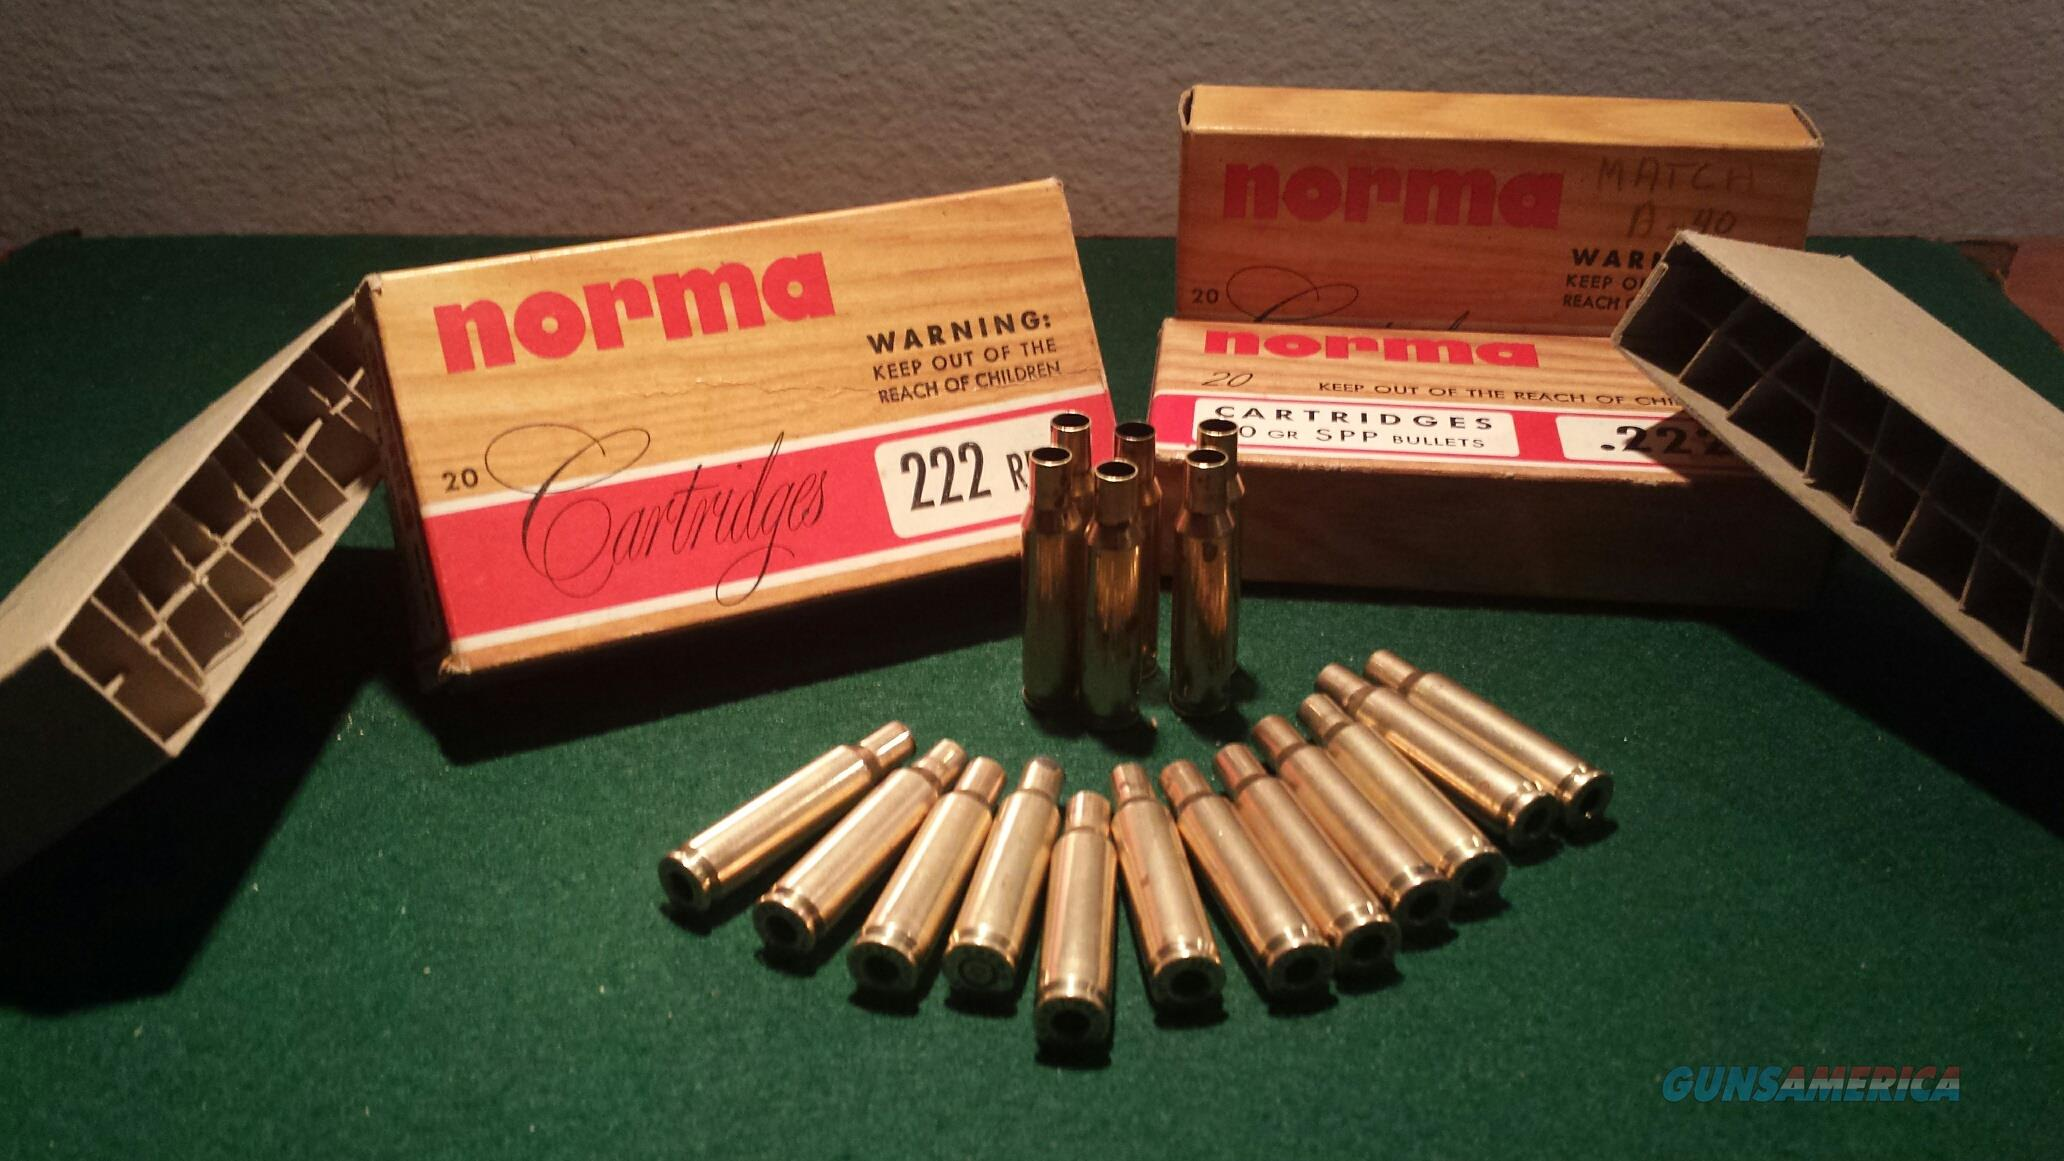 NORMA ORIGINAL ammunition BOXES  222 caliber over 55 years old circa 1960  Non-Guns > Reloading > Components > Brass